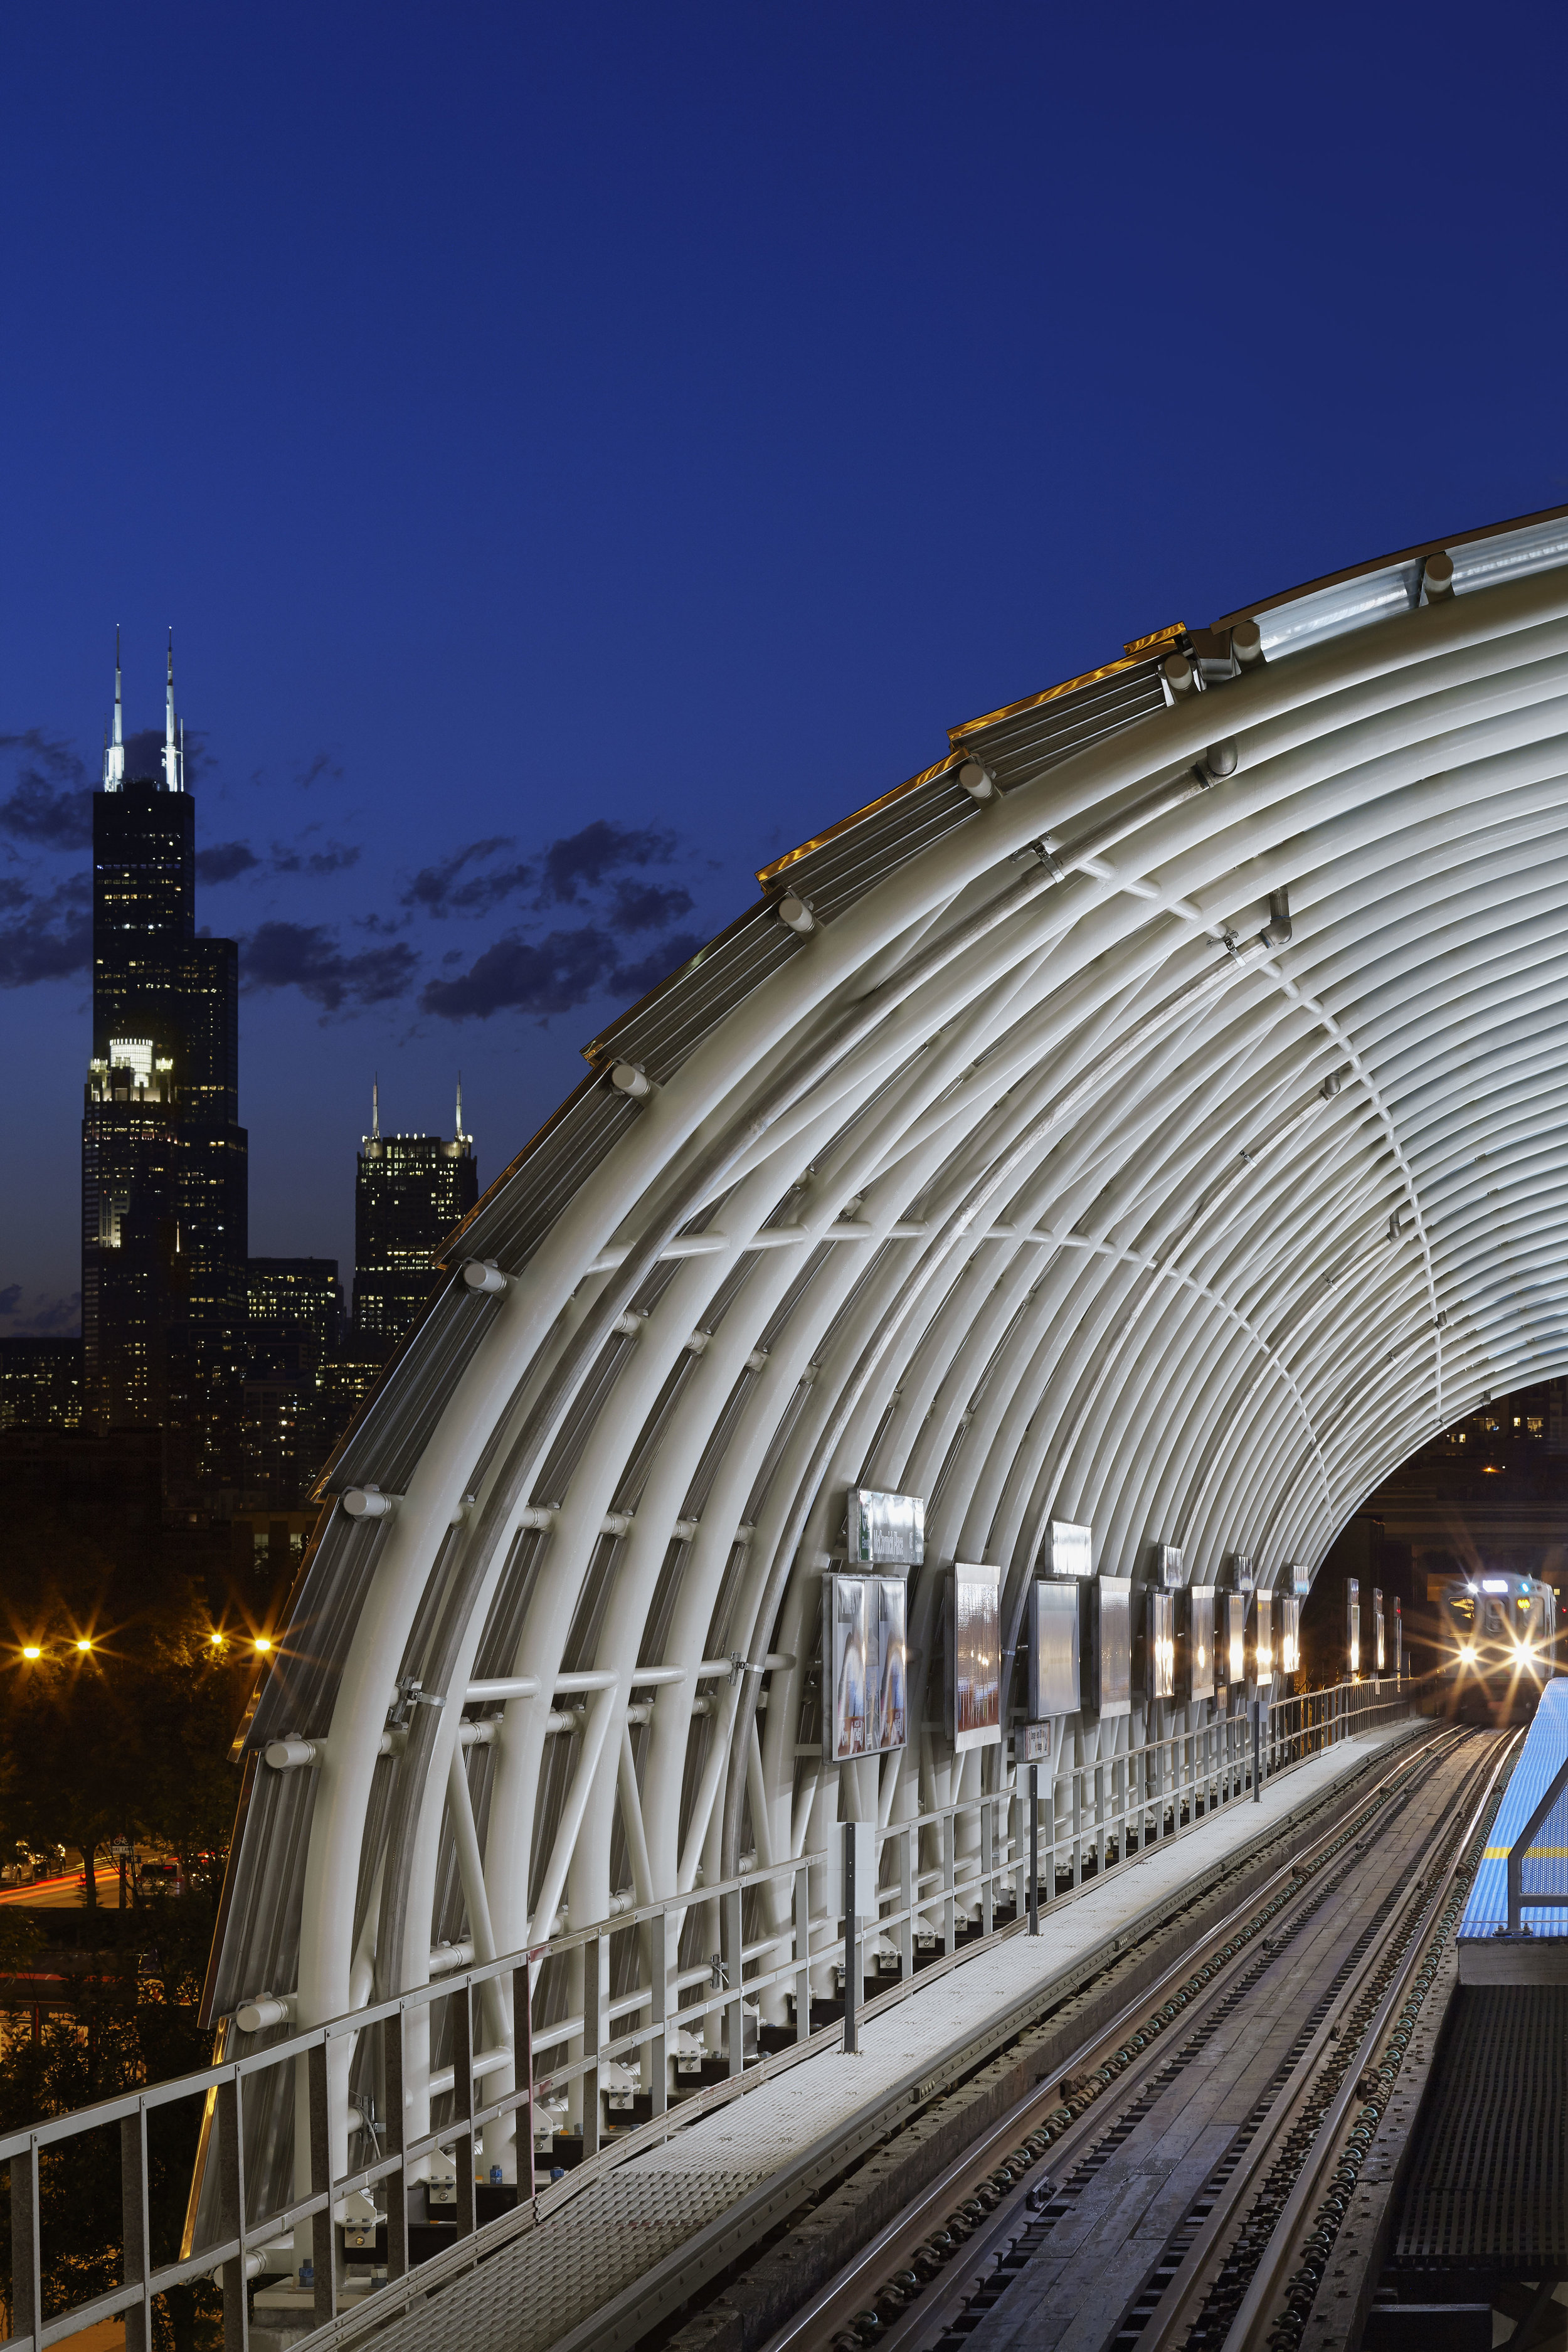 ROSS BARNEY ARCHITECTS and CDOT / Cermak McCormick Place CTA Station / Chicago